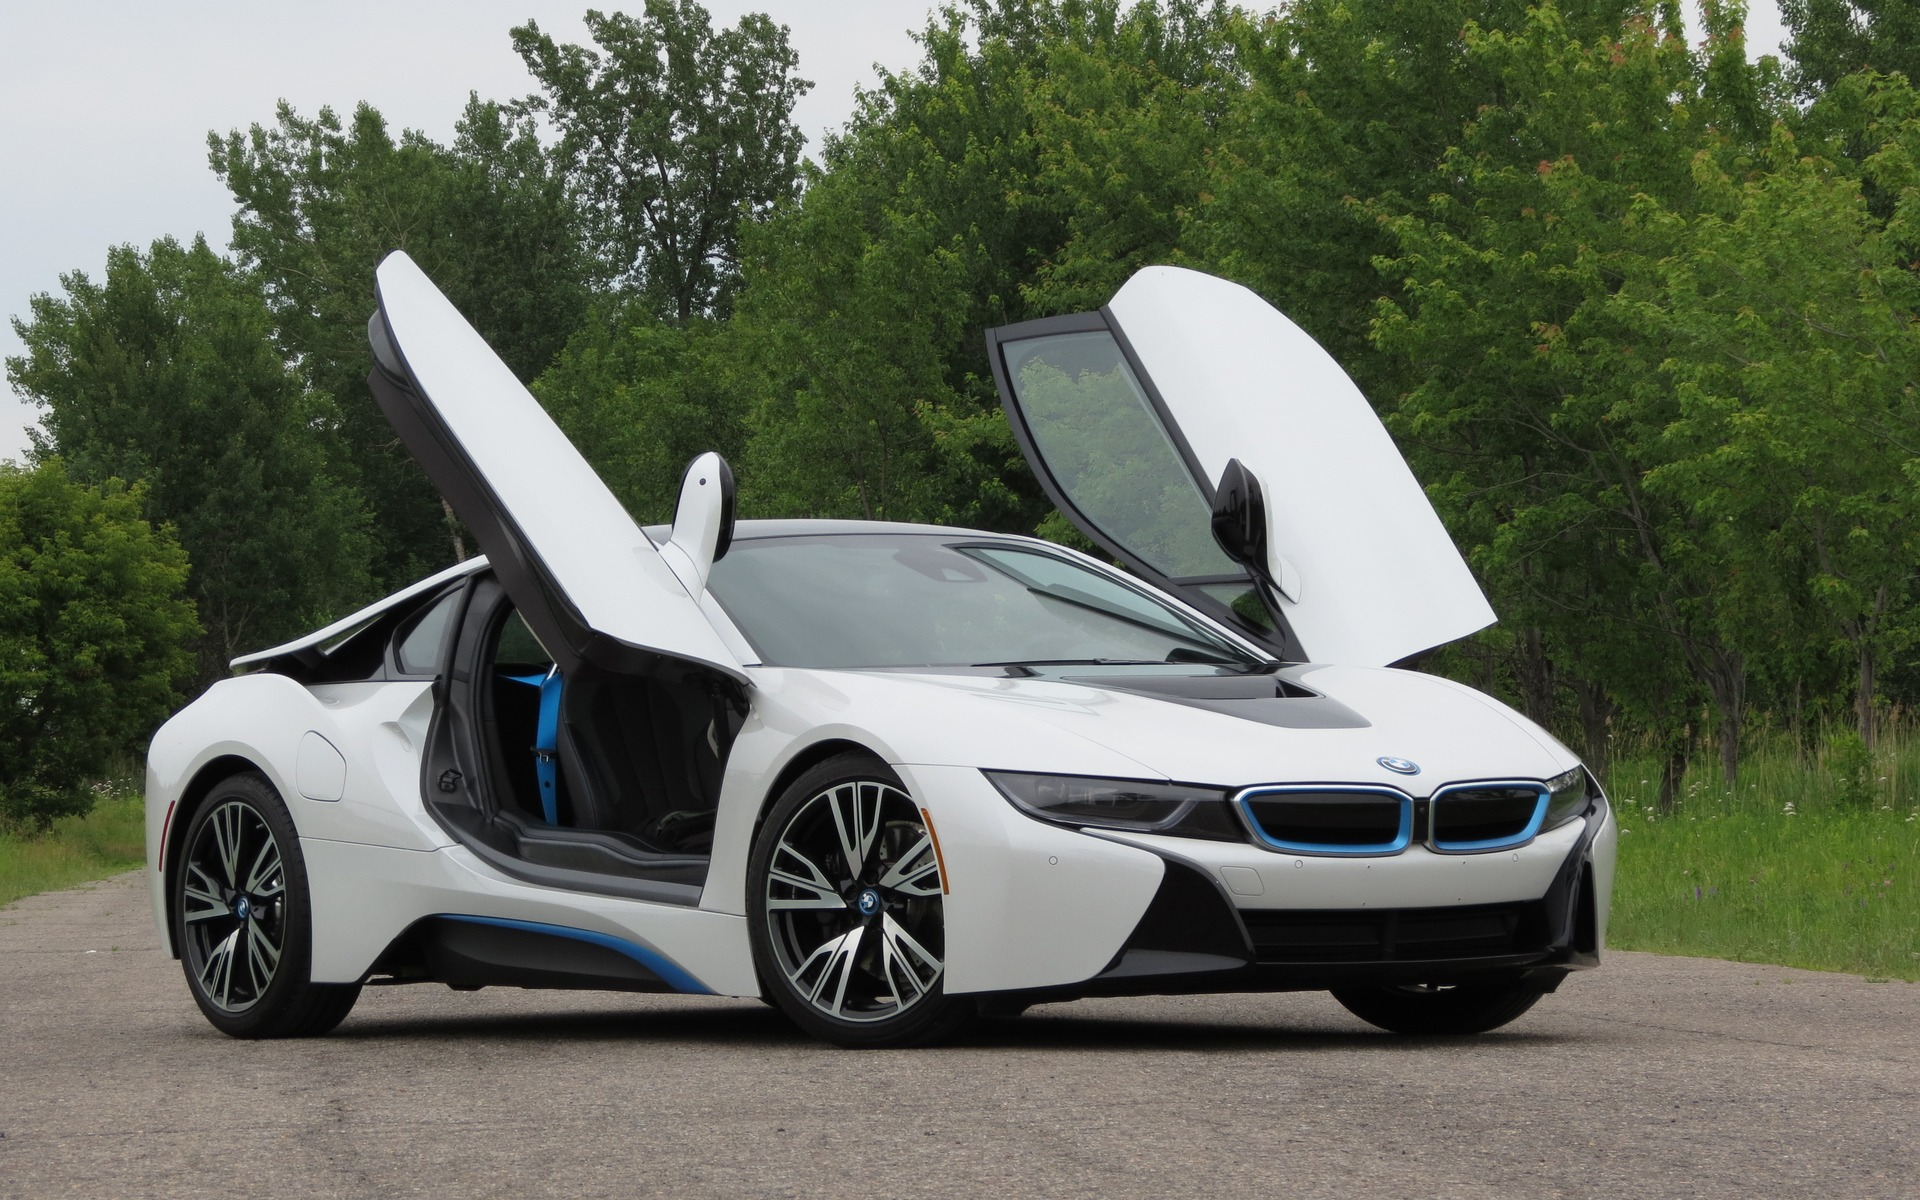 2016 Bmw I8 News Reviews Picture Galleries And Videos The Car